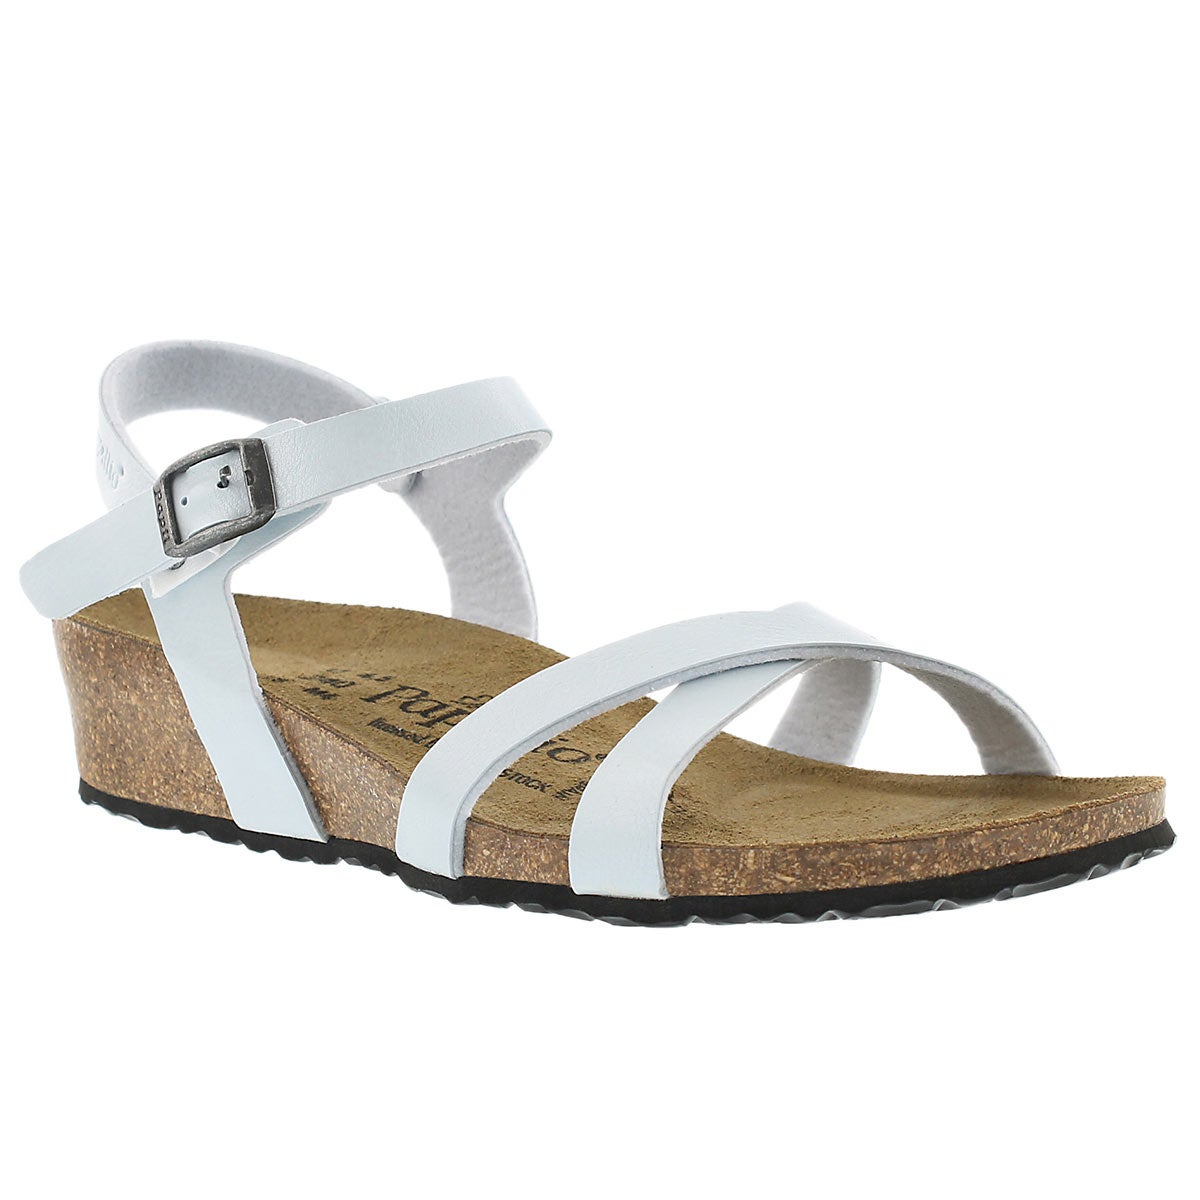 Lds Alyssa blue wedge sandal-Narrow